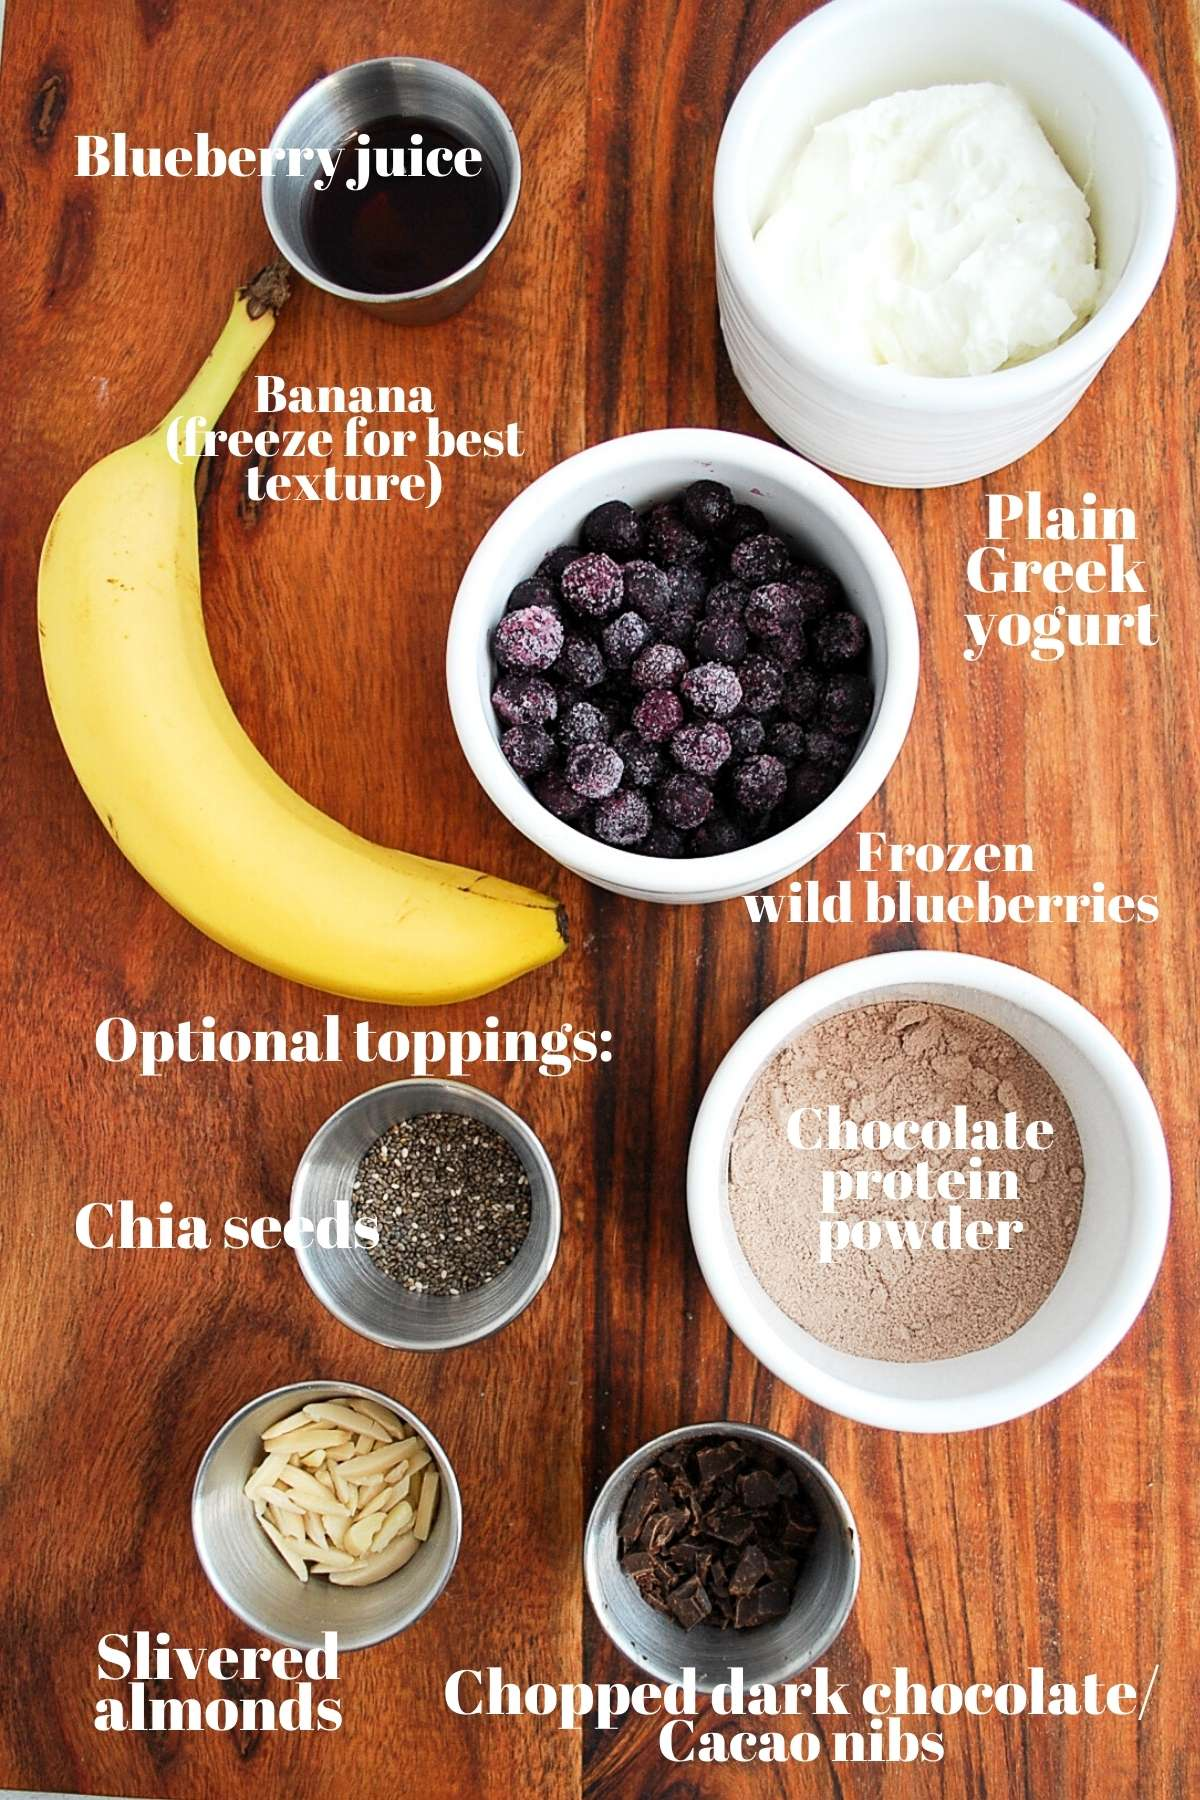 banana, frozen blueberries, yogurt, blueberry juice, chocolate protein powder, chia seeds, almonds, and chopped chocolate for a smoothie bowl